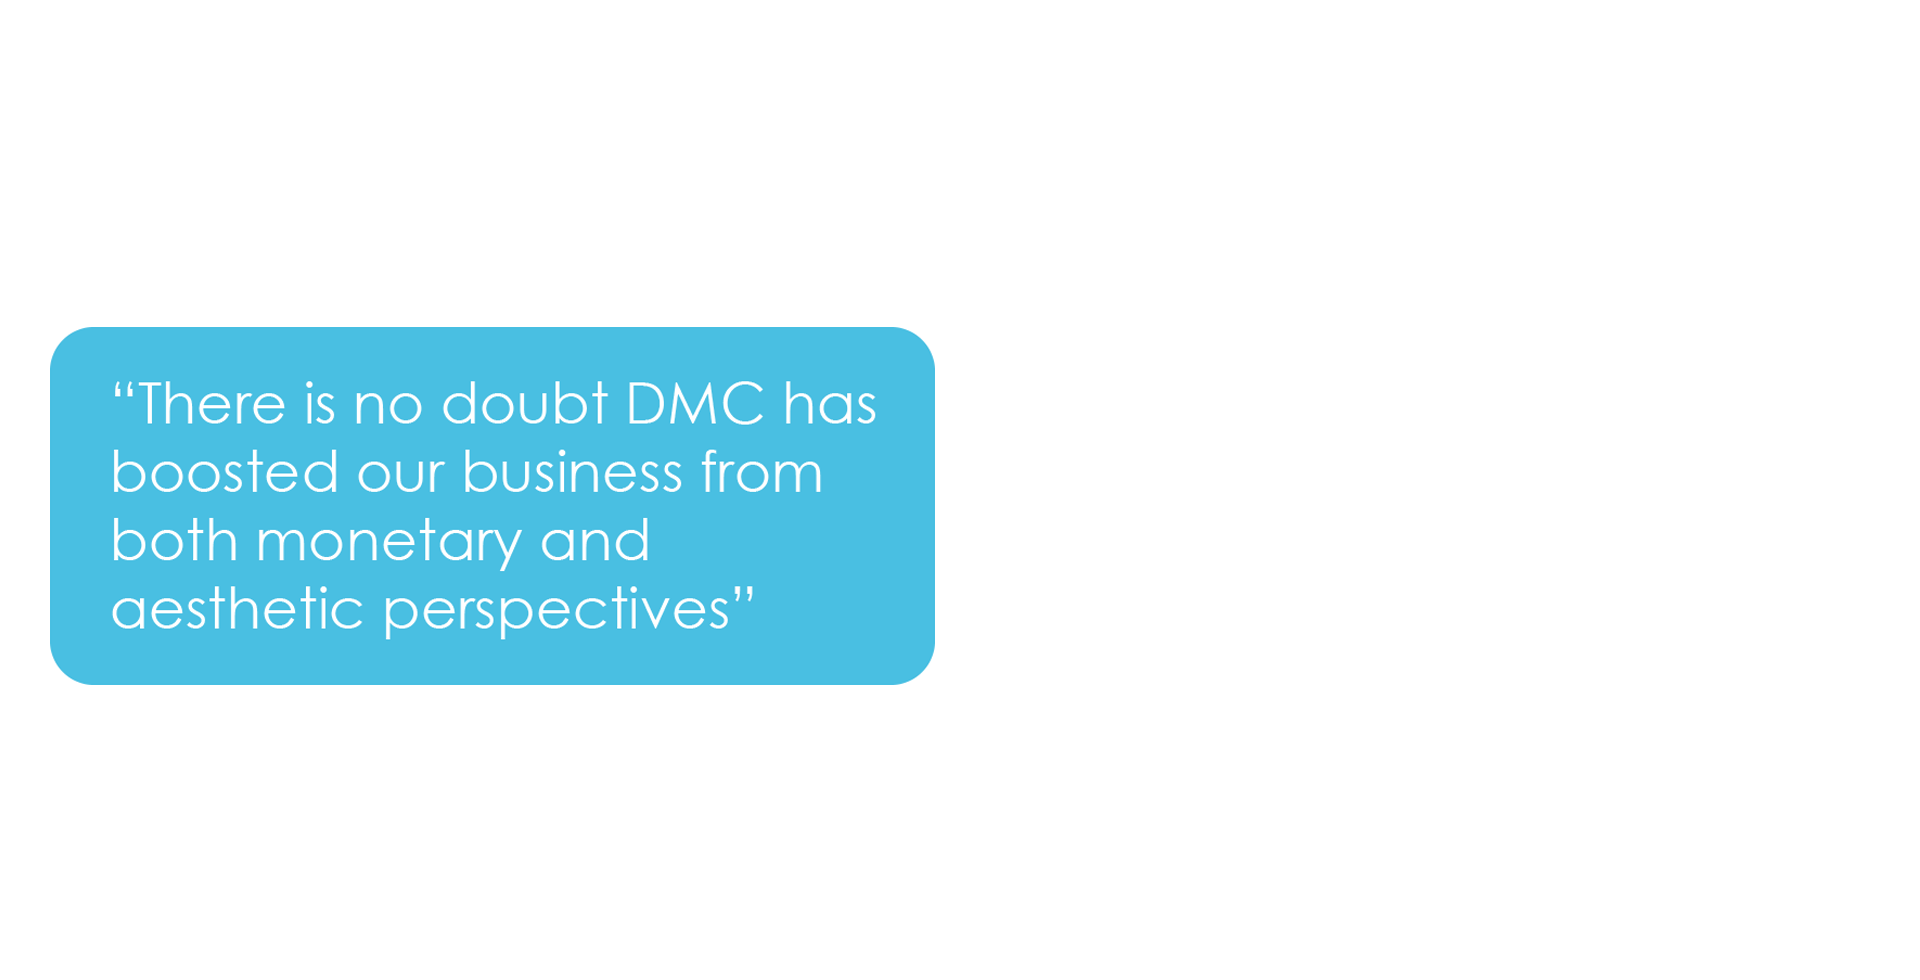 Grosvenor Estate Agents - There is no doubt DMC has boosted our business from both monetary and aesthetic perspectives